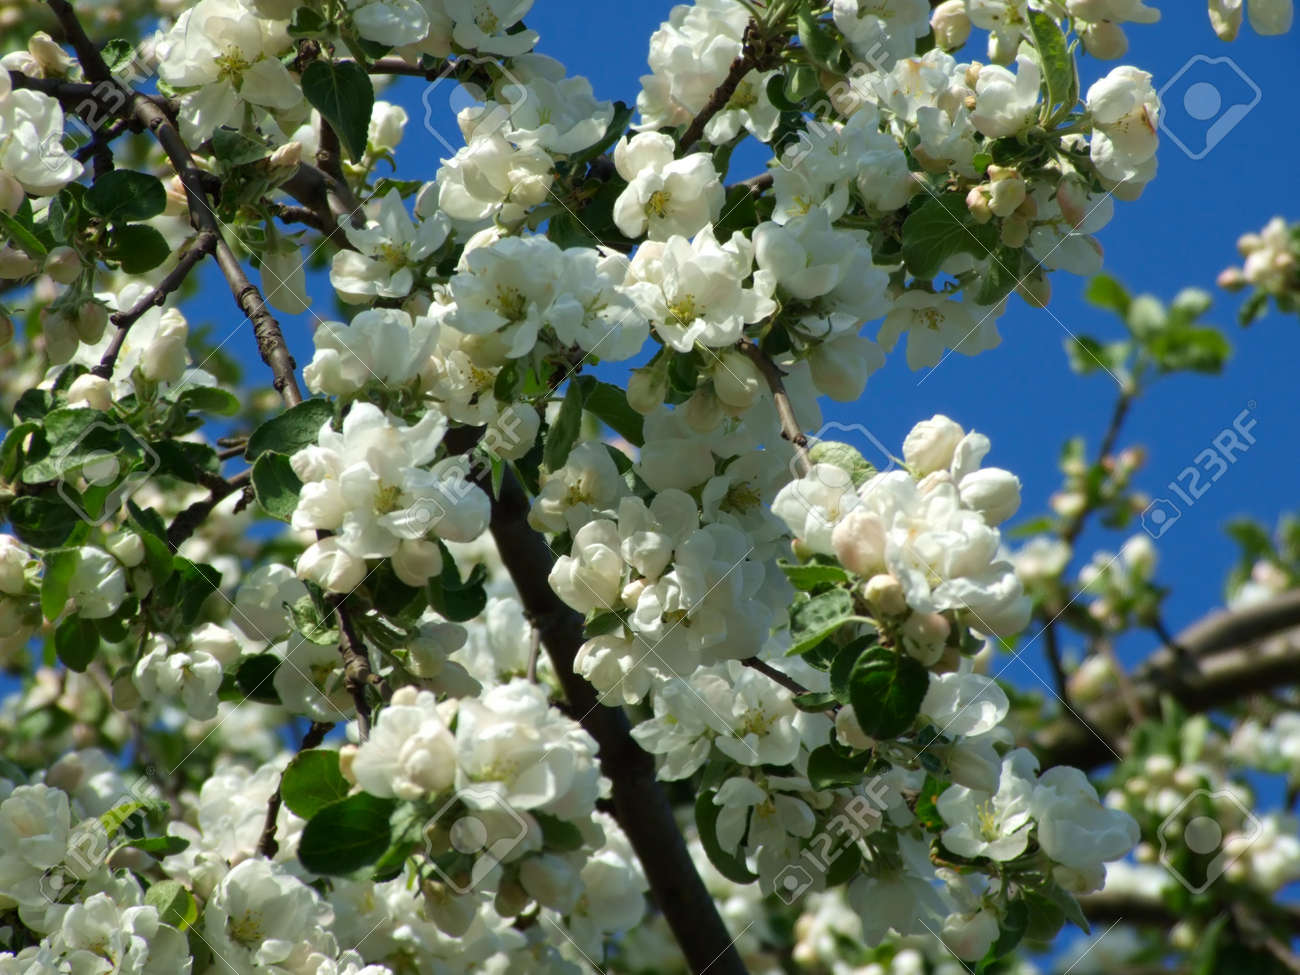 Young flowers of apple-trees against the blue sky Stock Photo - 12471572